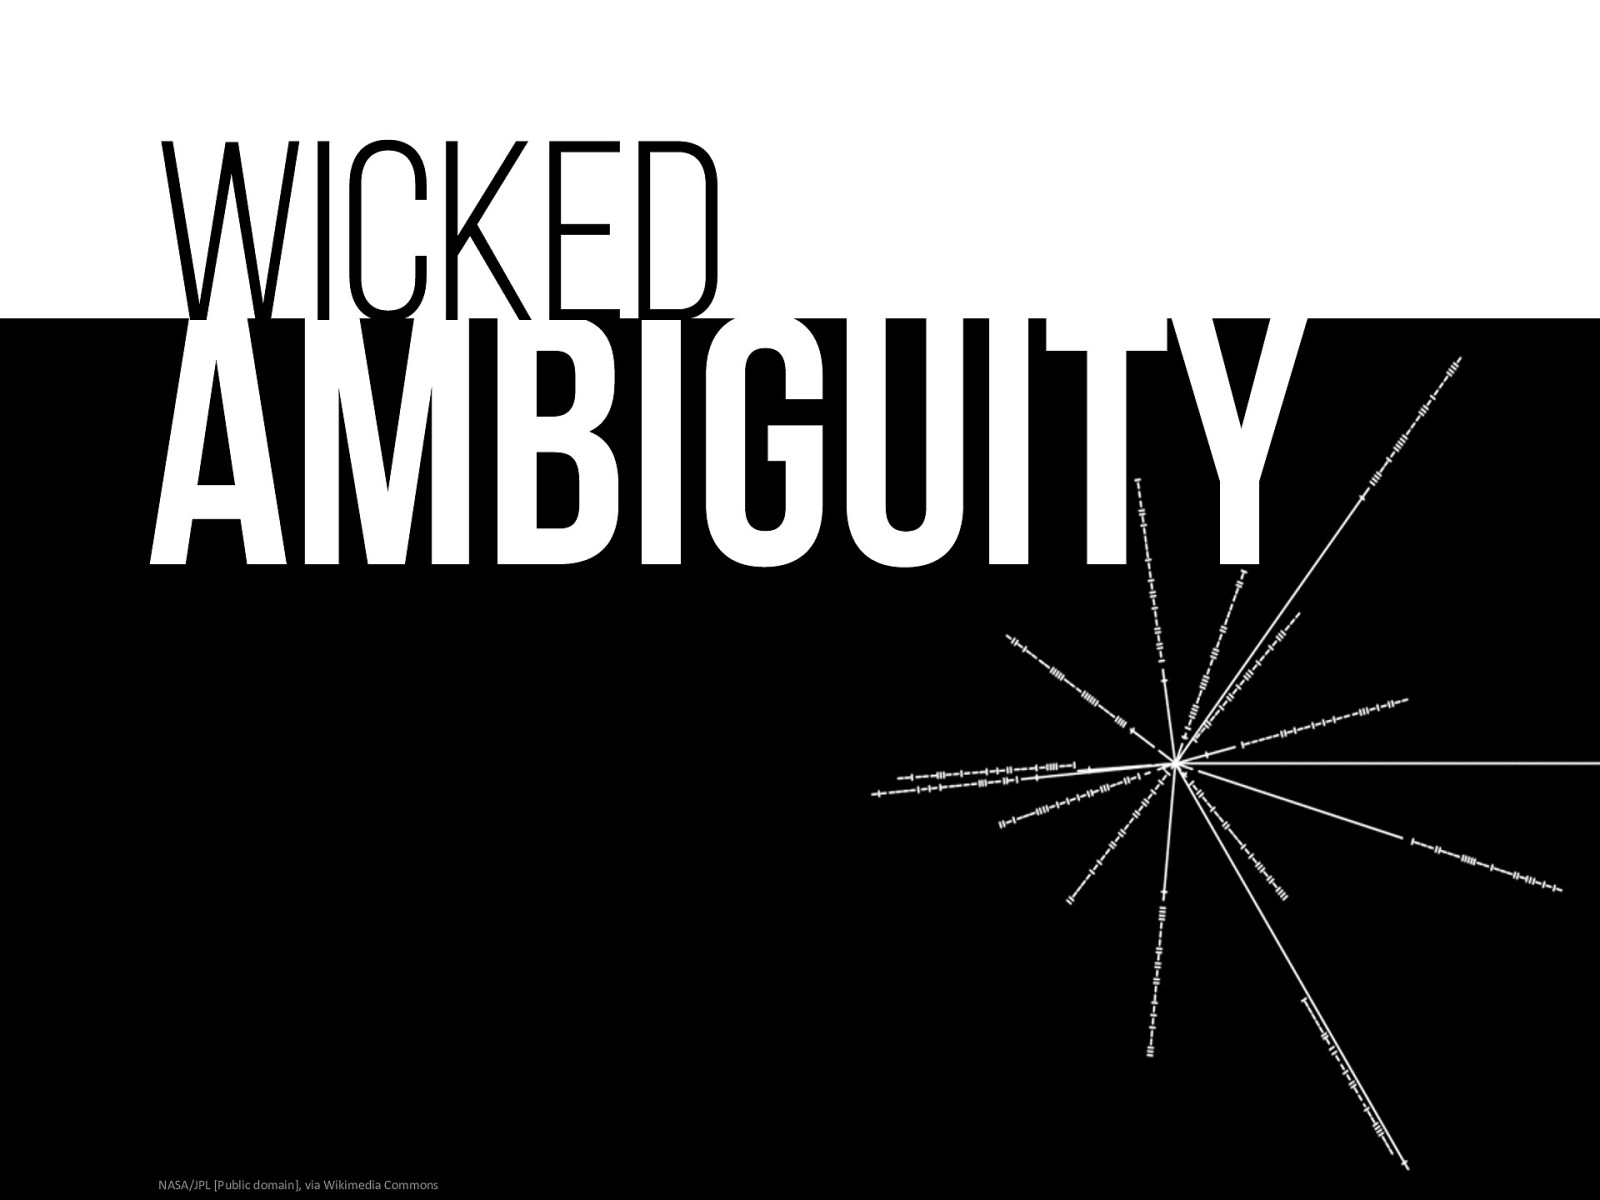 Keynote: Wicked Ambiguity and User Experience